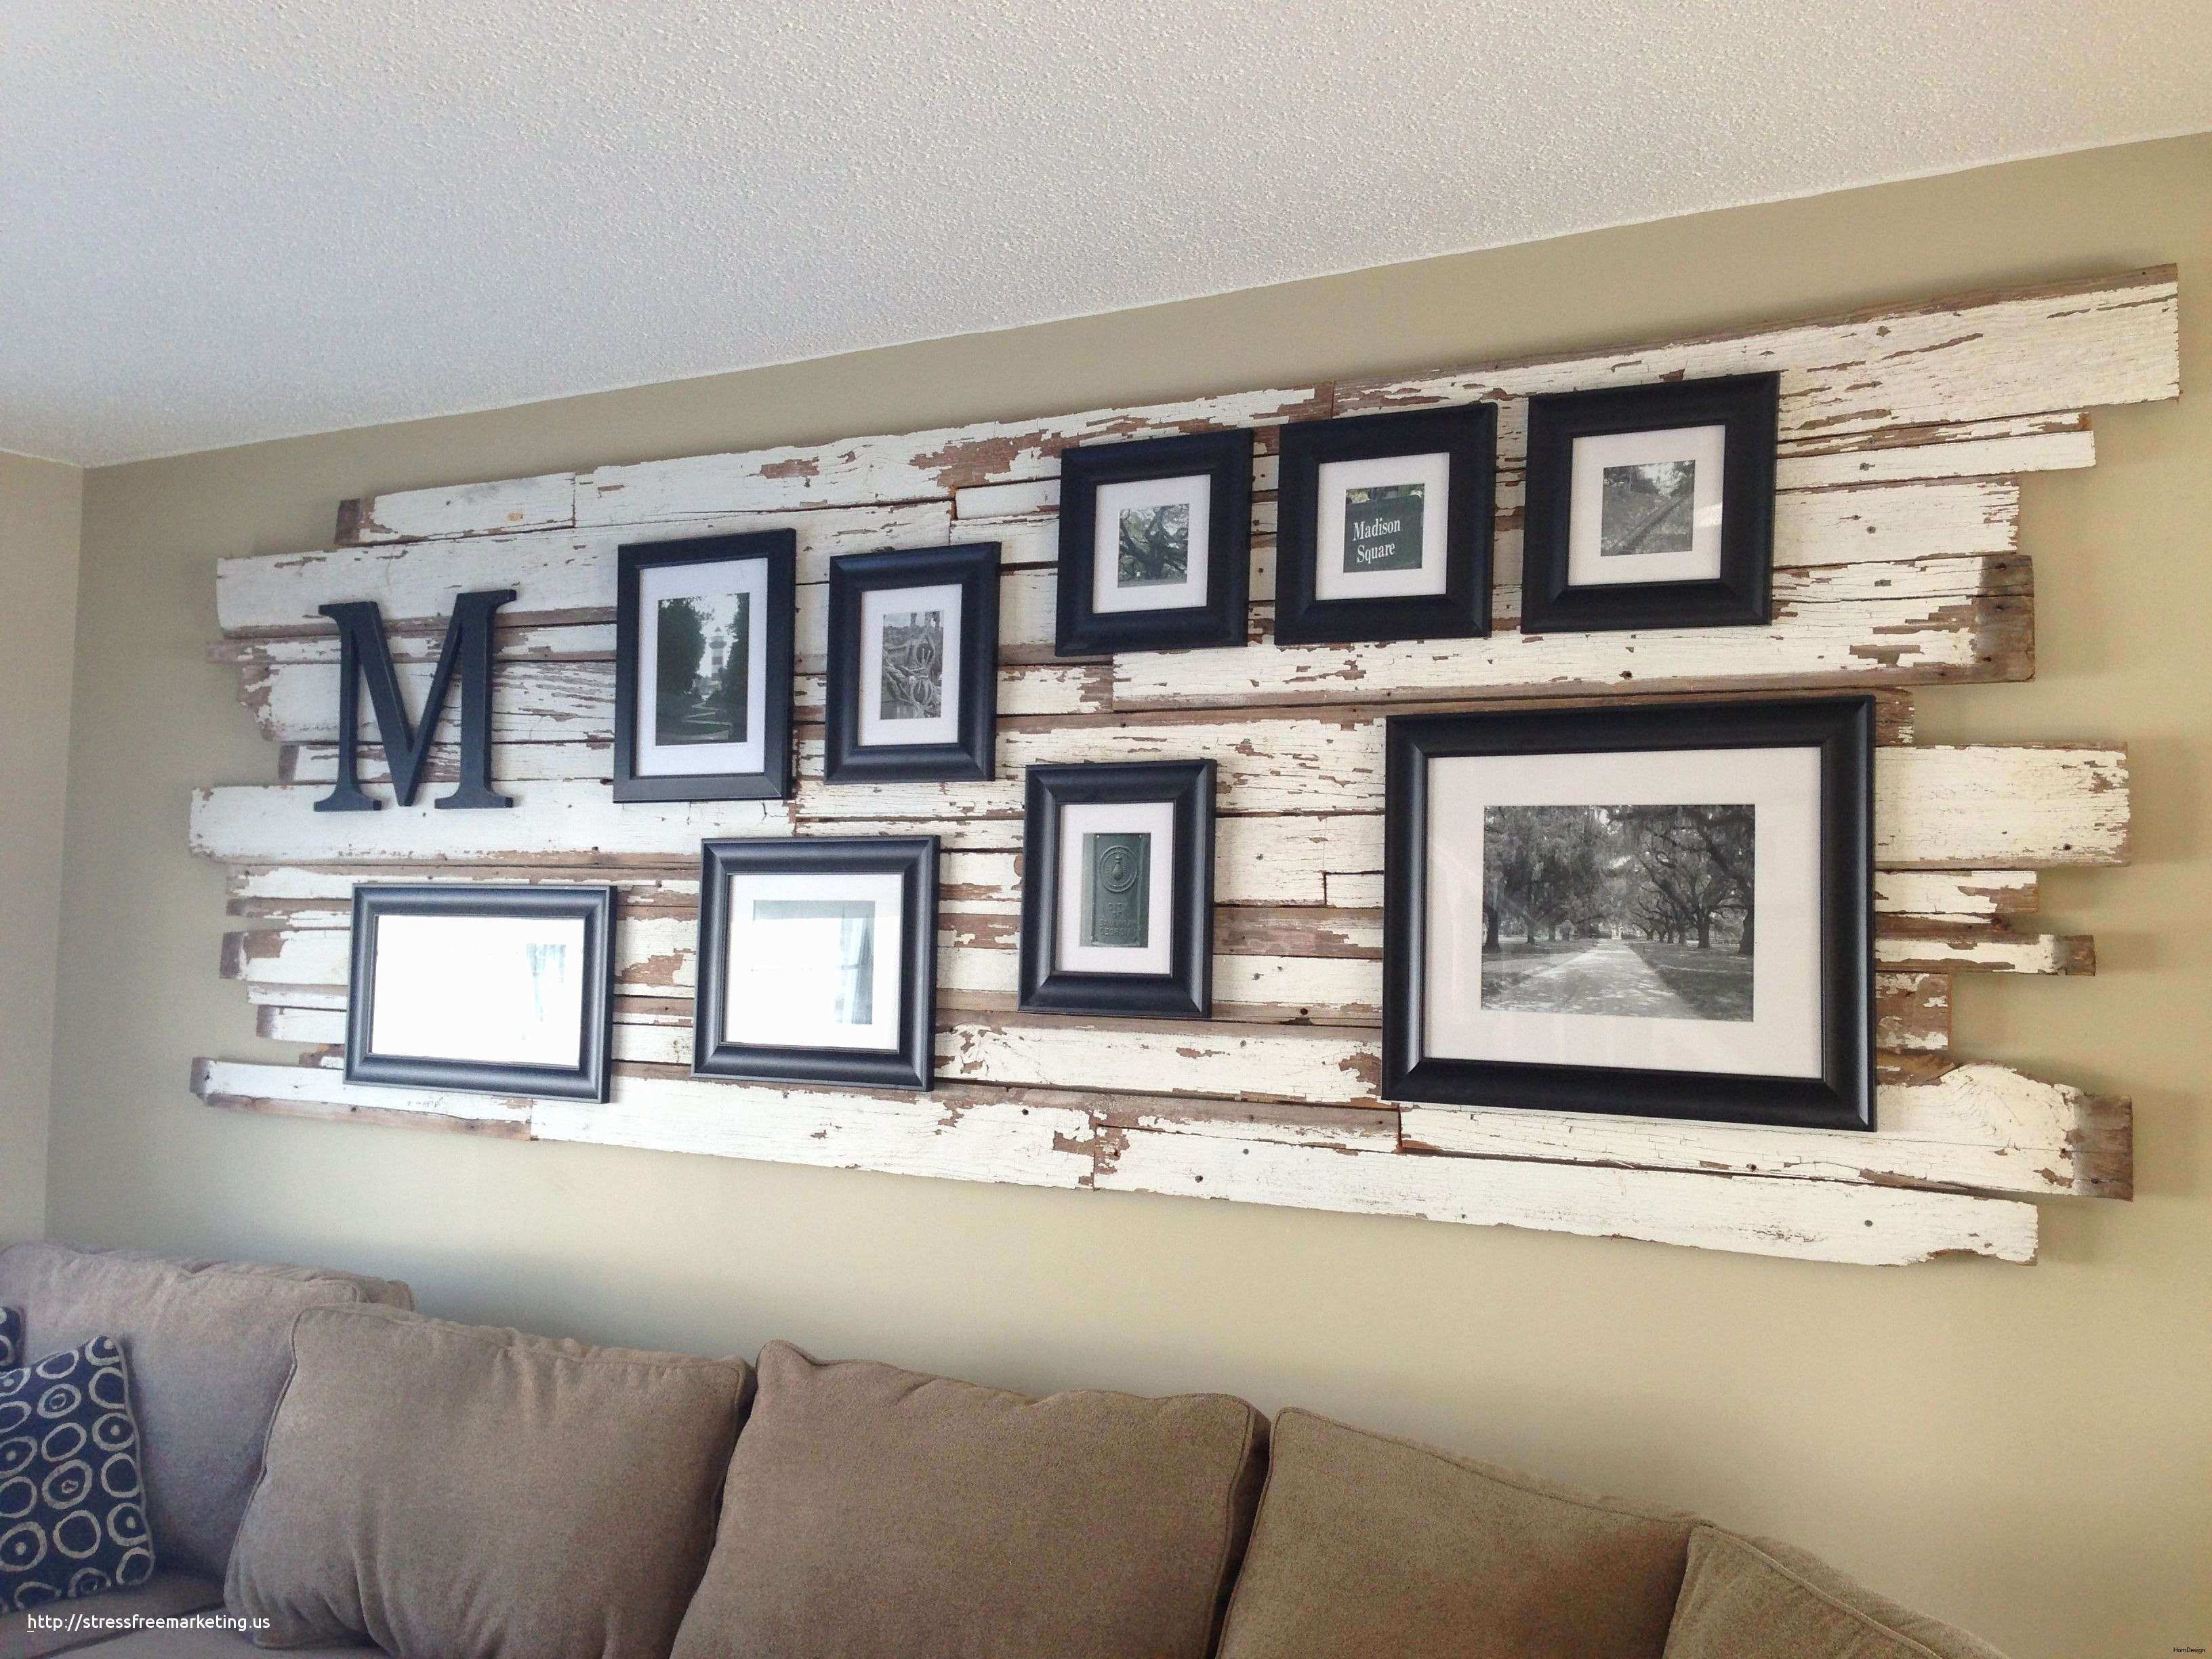 38 Unique Arts and Crafts Ideas for the Home